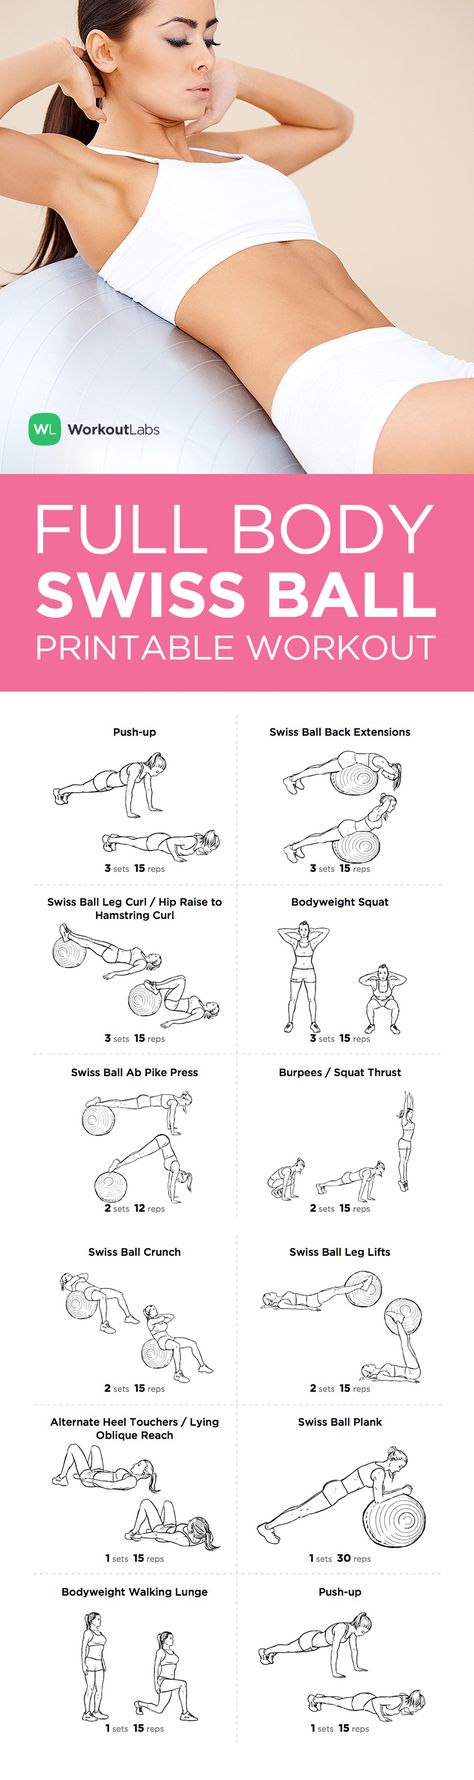 FREE PDF: Full Body Swiss Ball Workout for Women and Men – visit http://wlabs.me/YgDmGP to download!